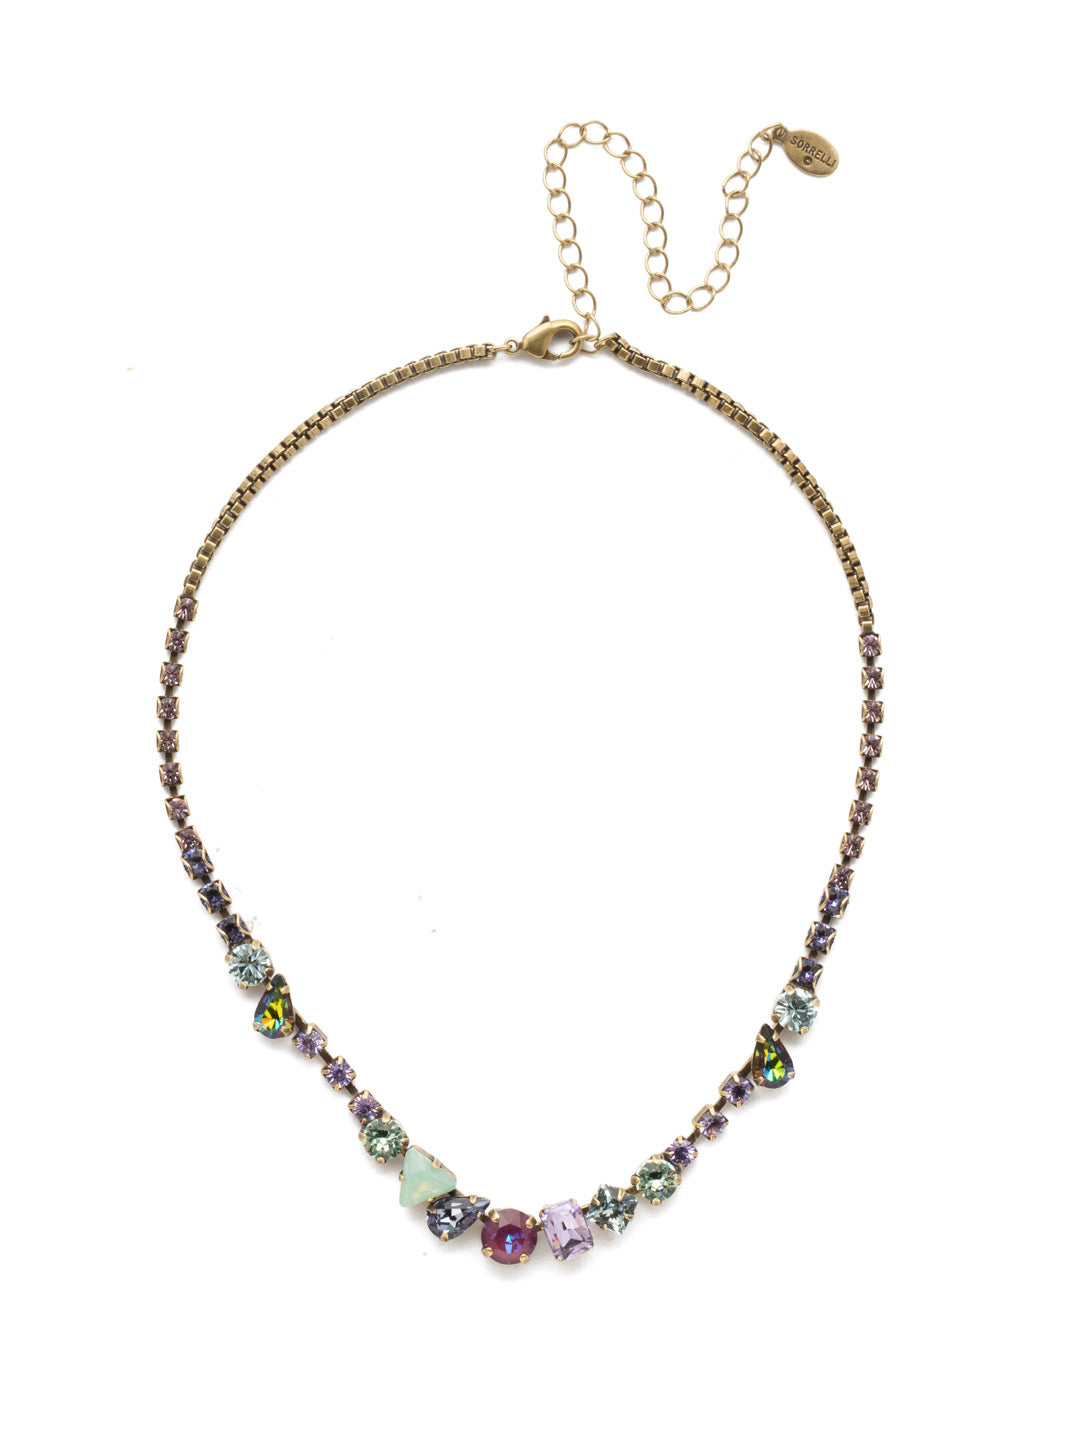 Sonja Tennis Necklace - NEN12AGIRB